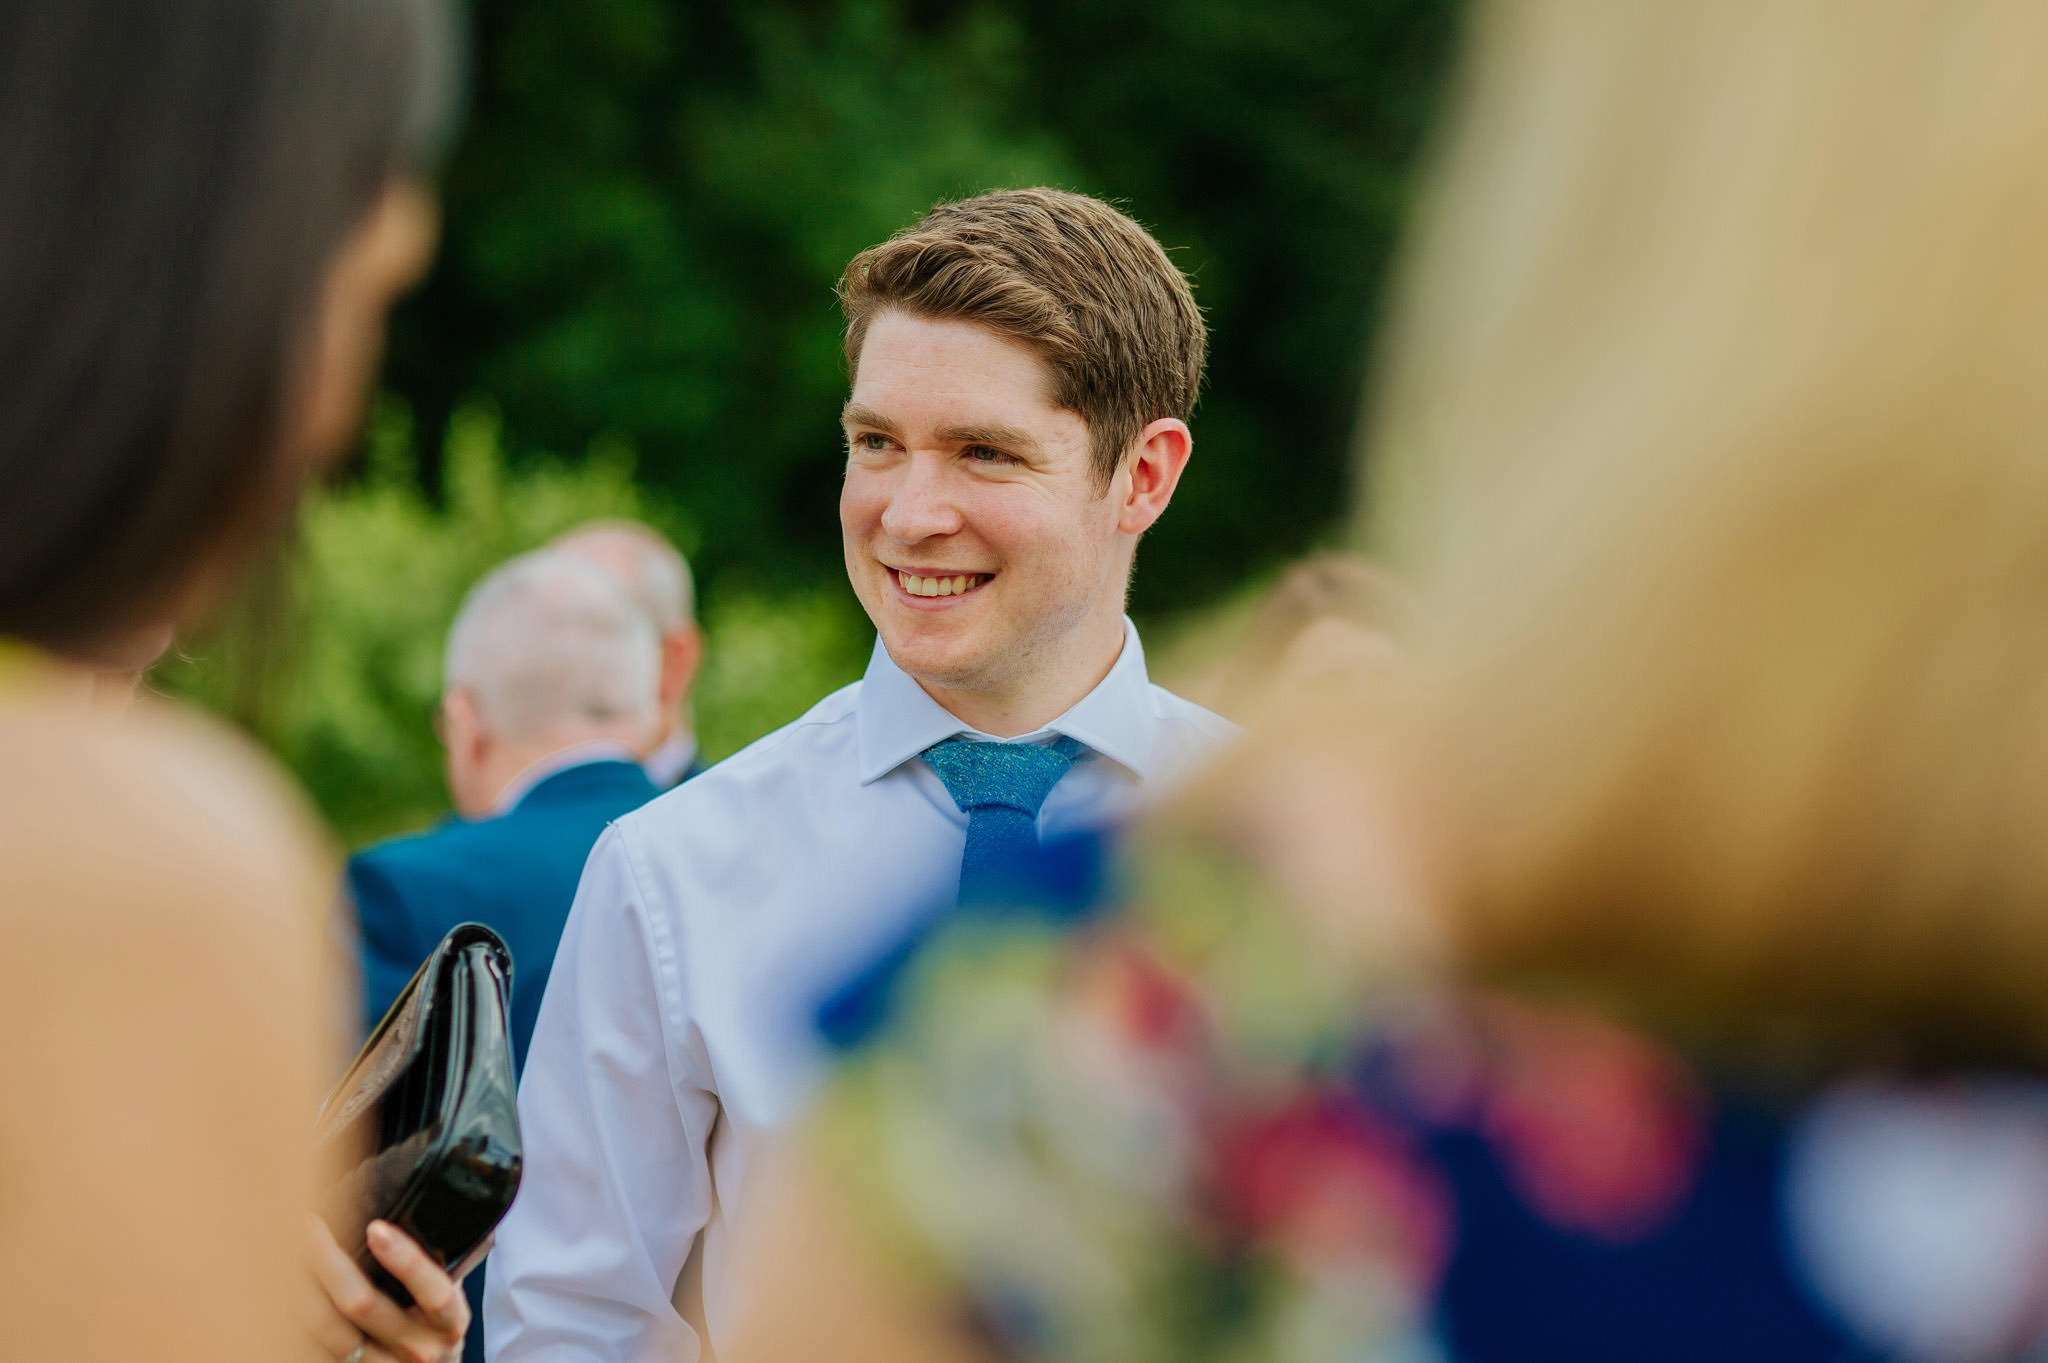 Wedding photography at Homme House in Herefordshire, West Midlands 45